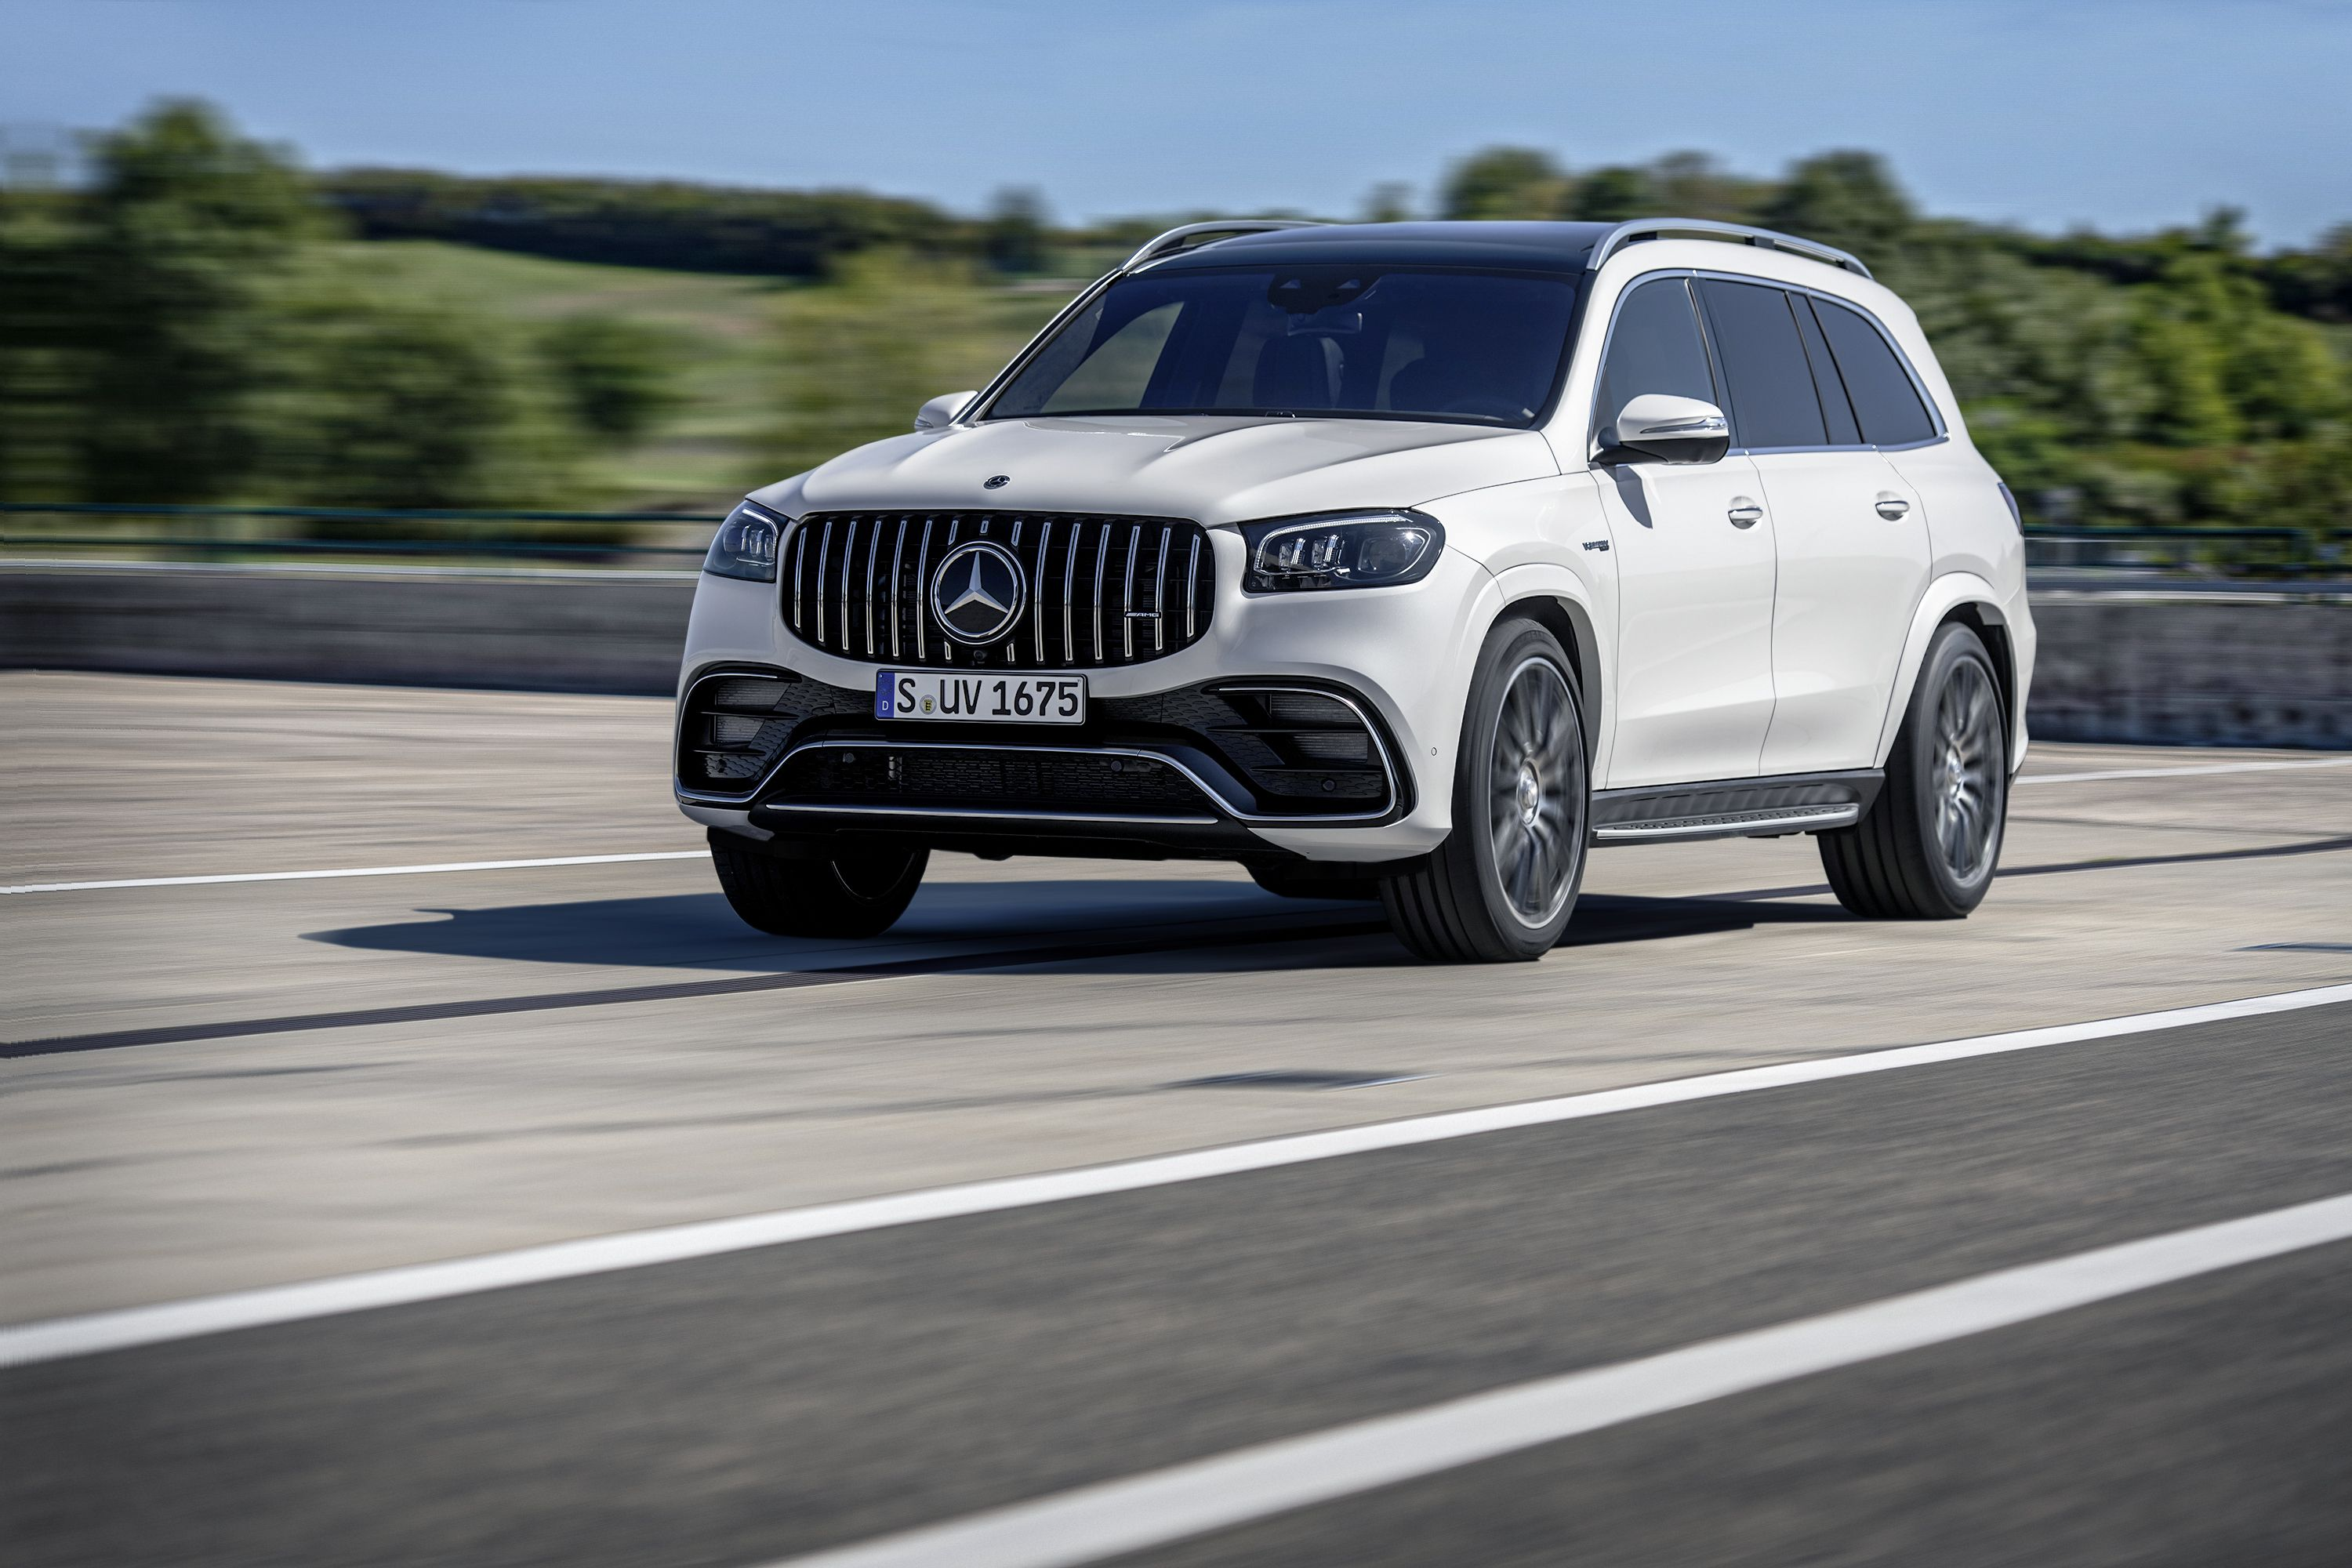 2020 Mercedes Amg Gls 63 S And Gle 63 S Revealed With 603 Hp